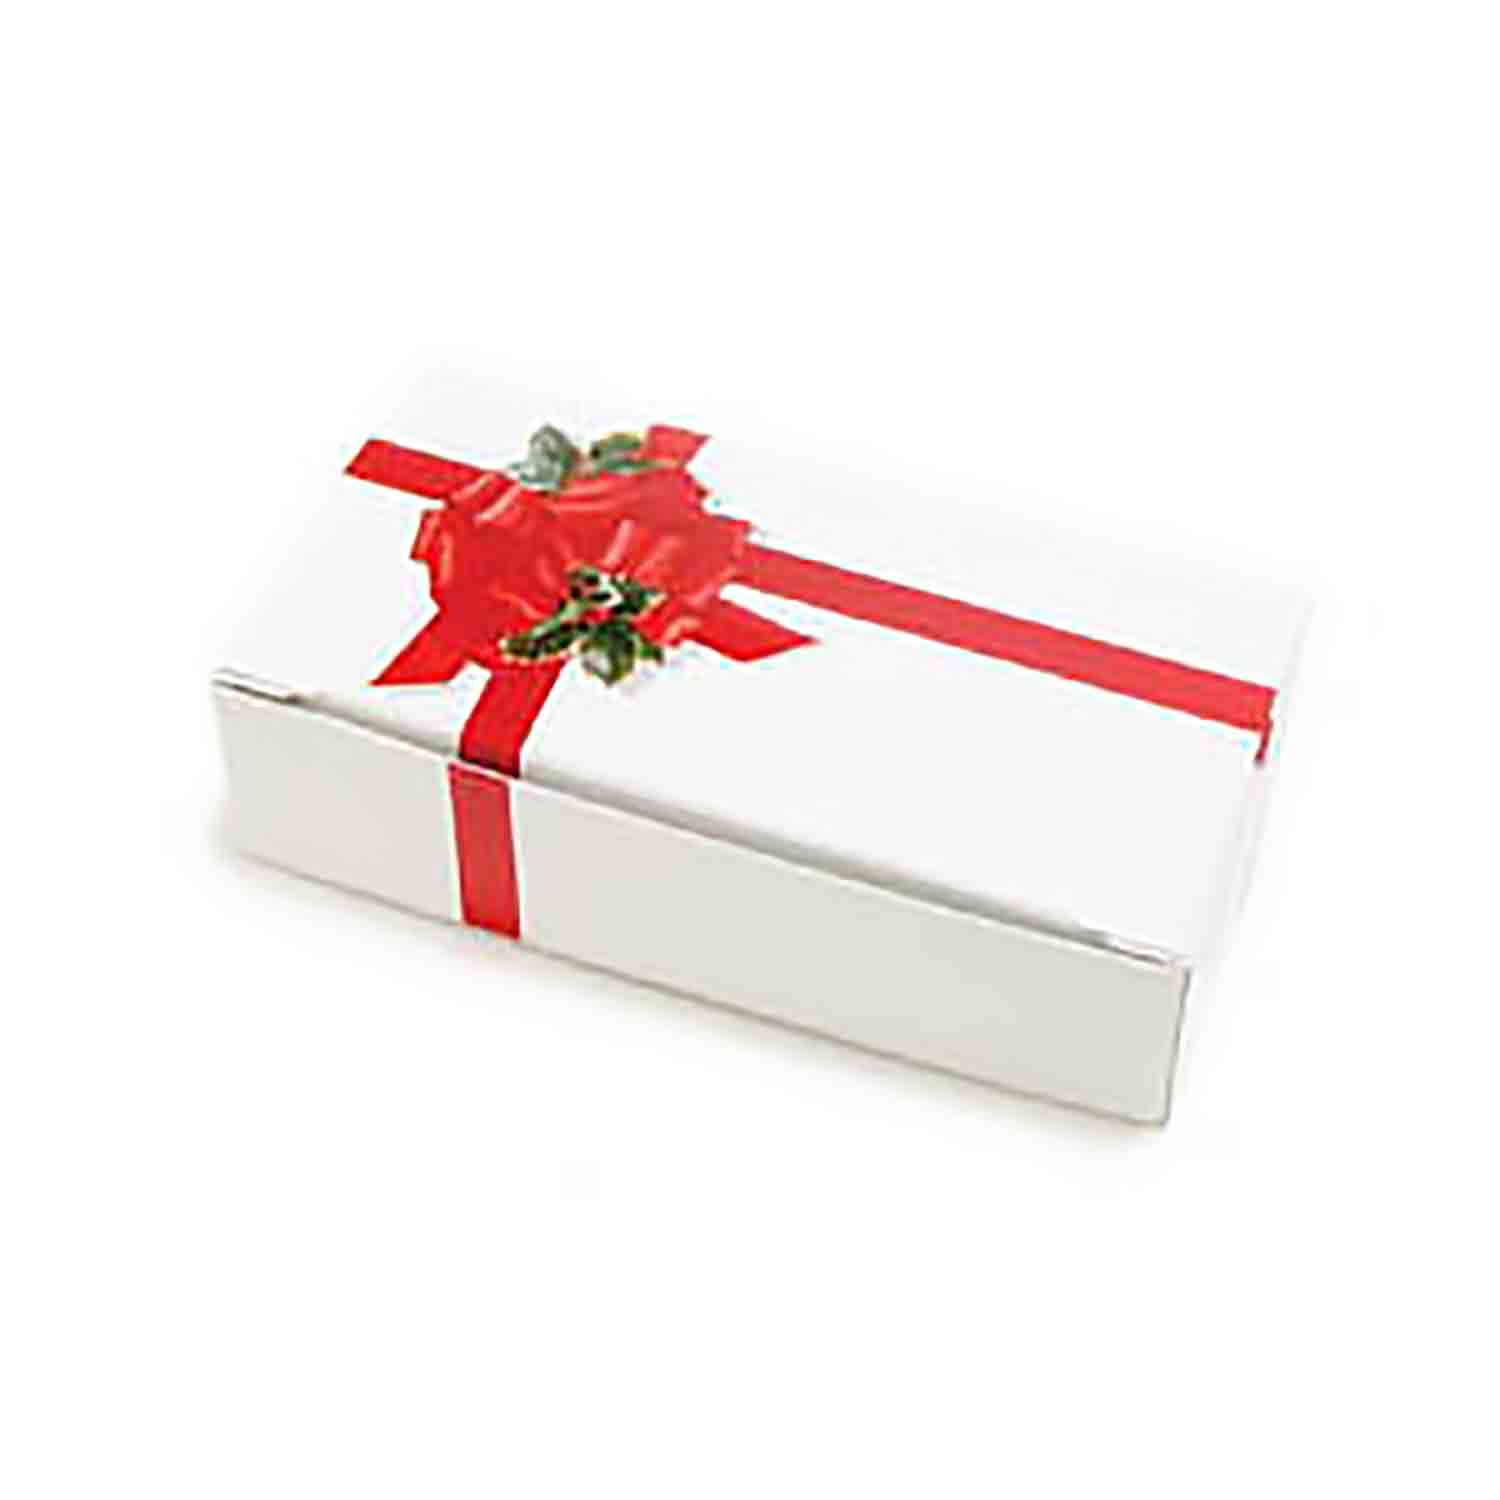 1 lb. Ribbon & Holly Candy Box